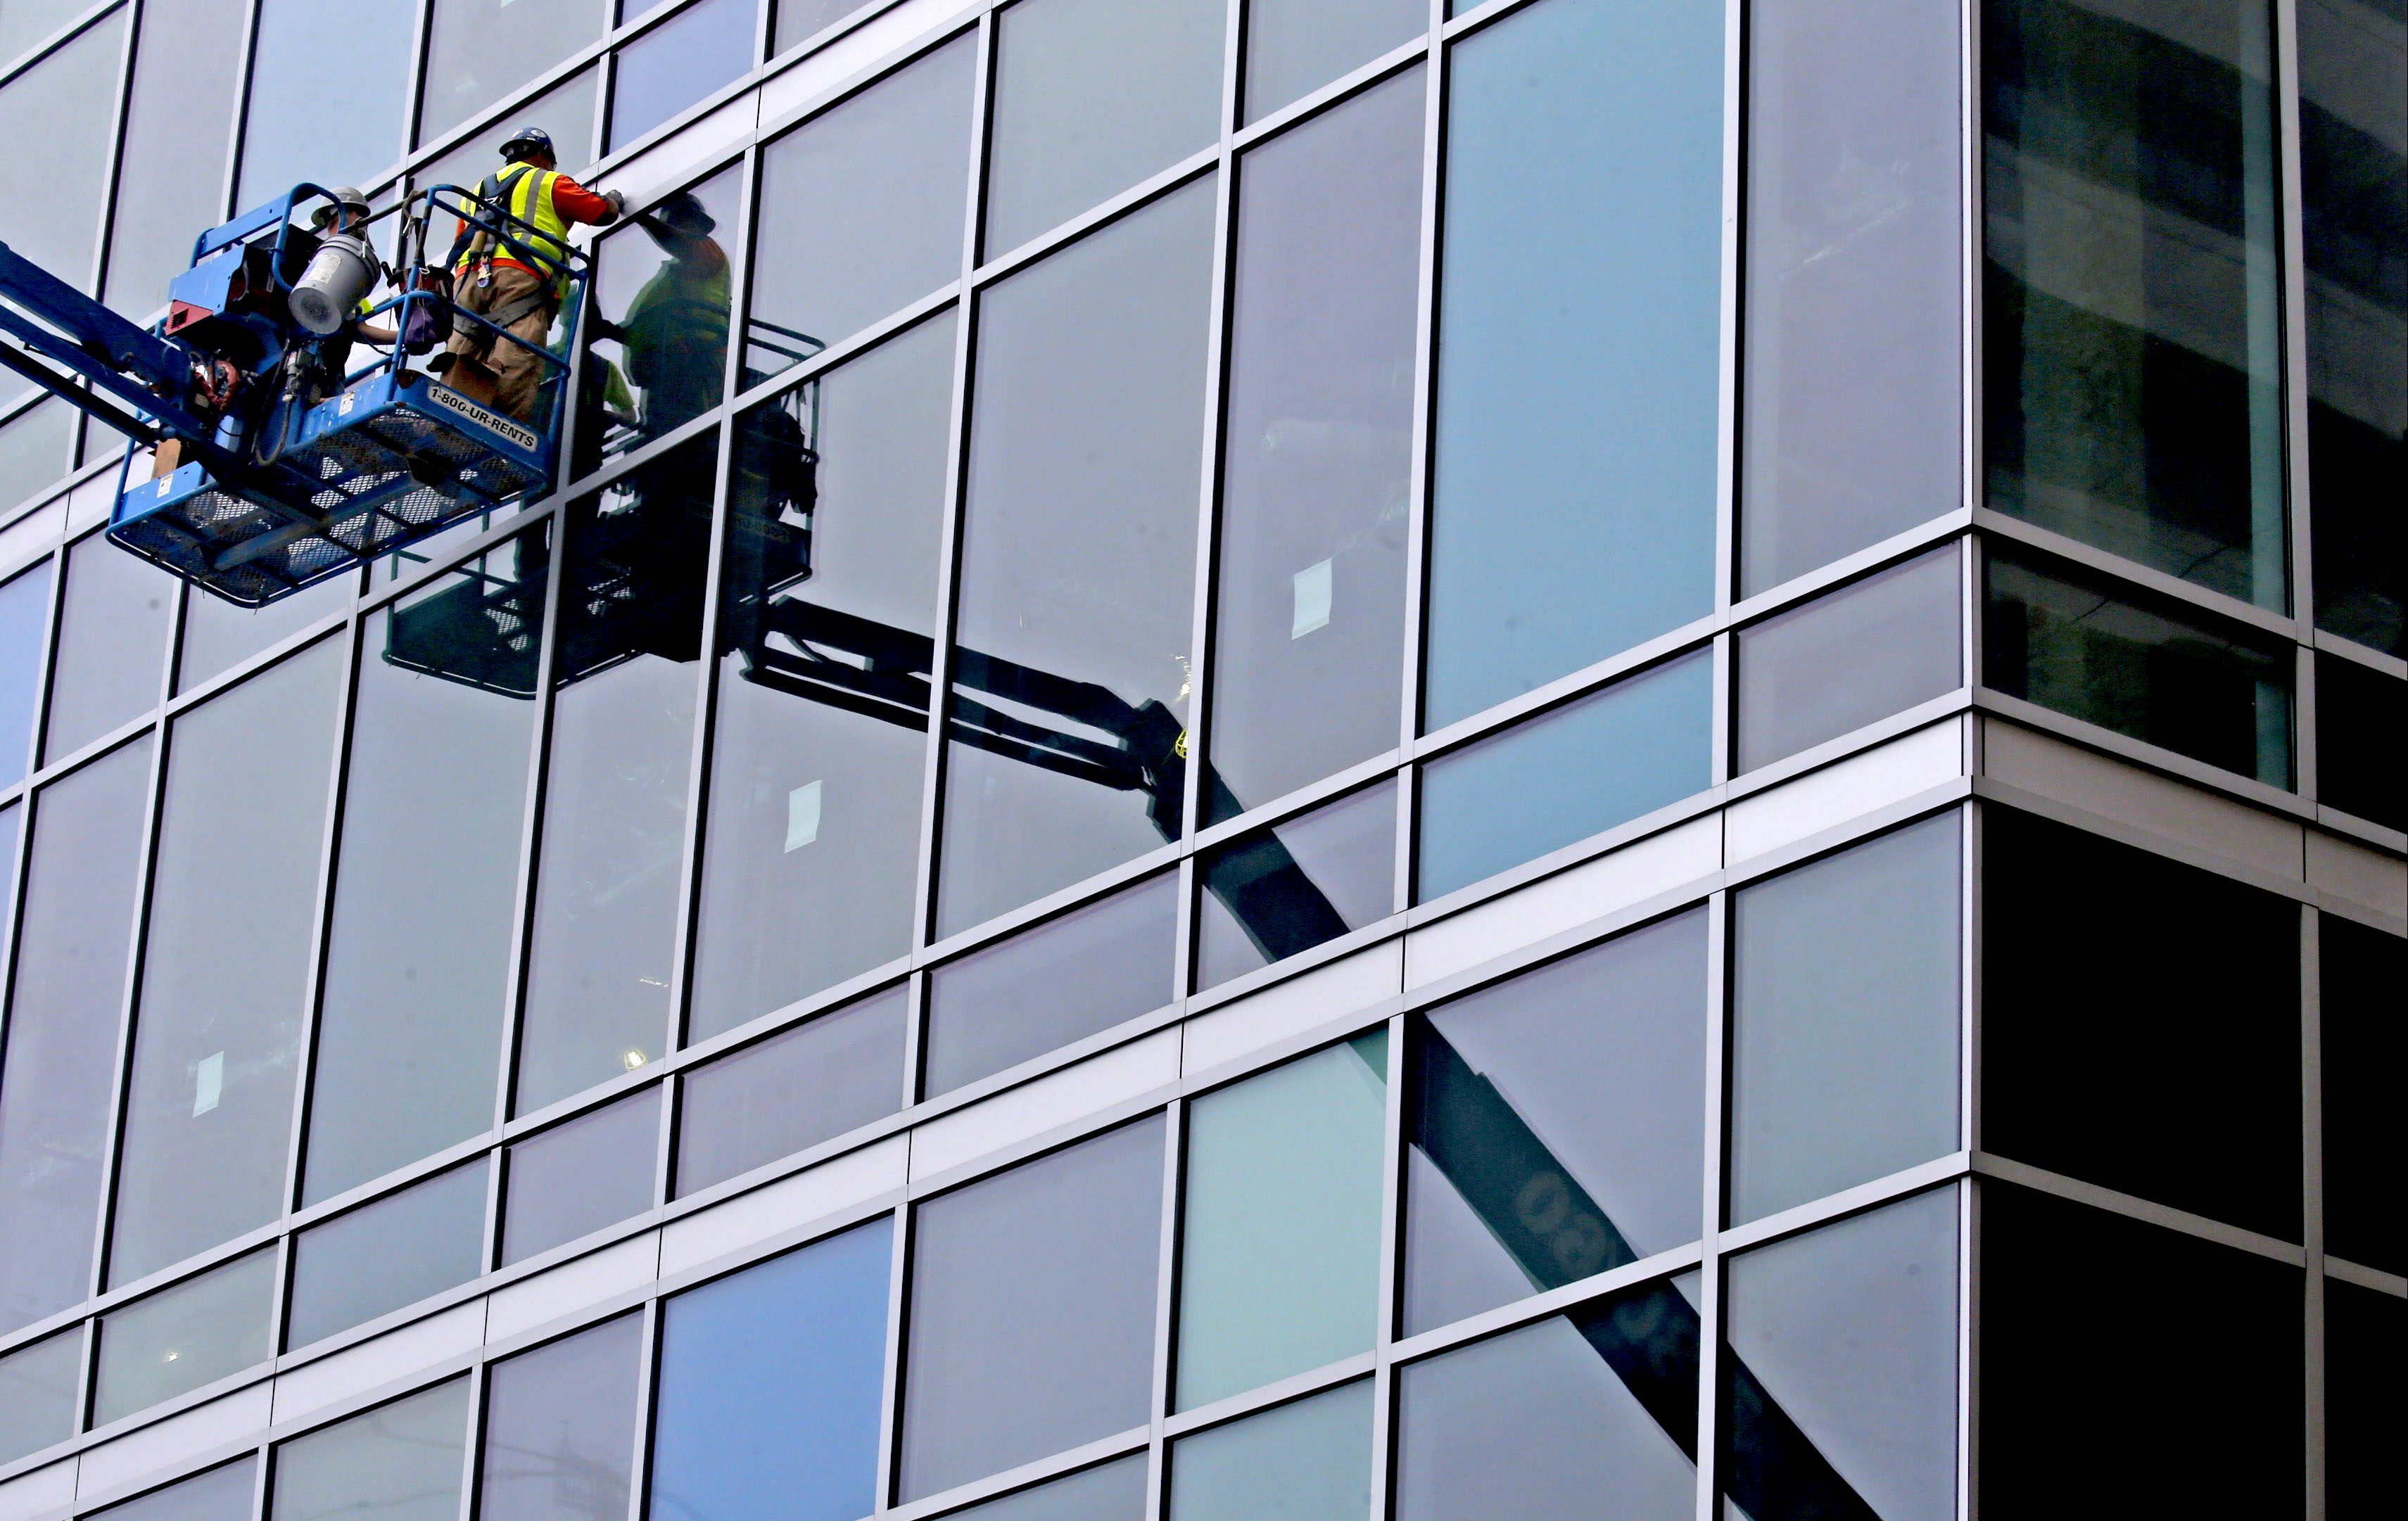 Workers adjust the windows during installation at the John R. Oishei Children's Hospital   in Buffalo in this 2016 file photo.  (Robert Kirkham/Buffalo News)